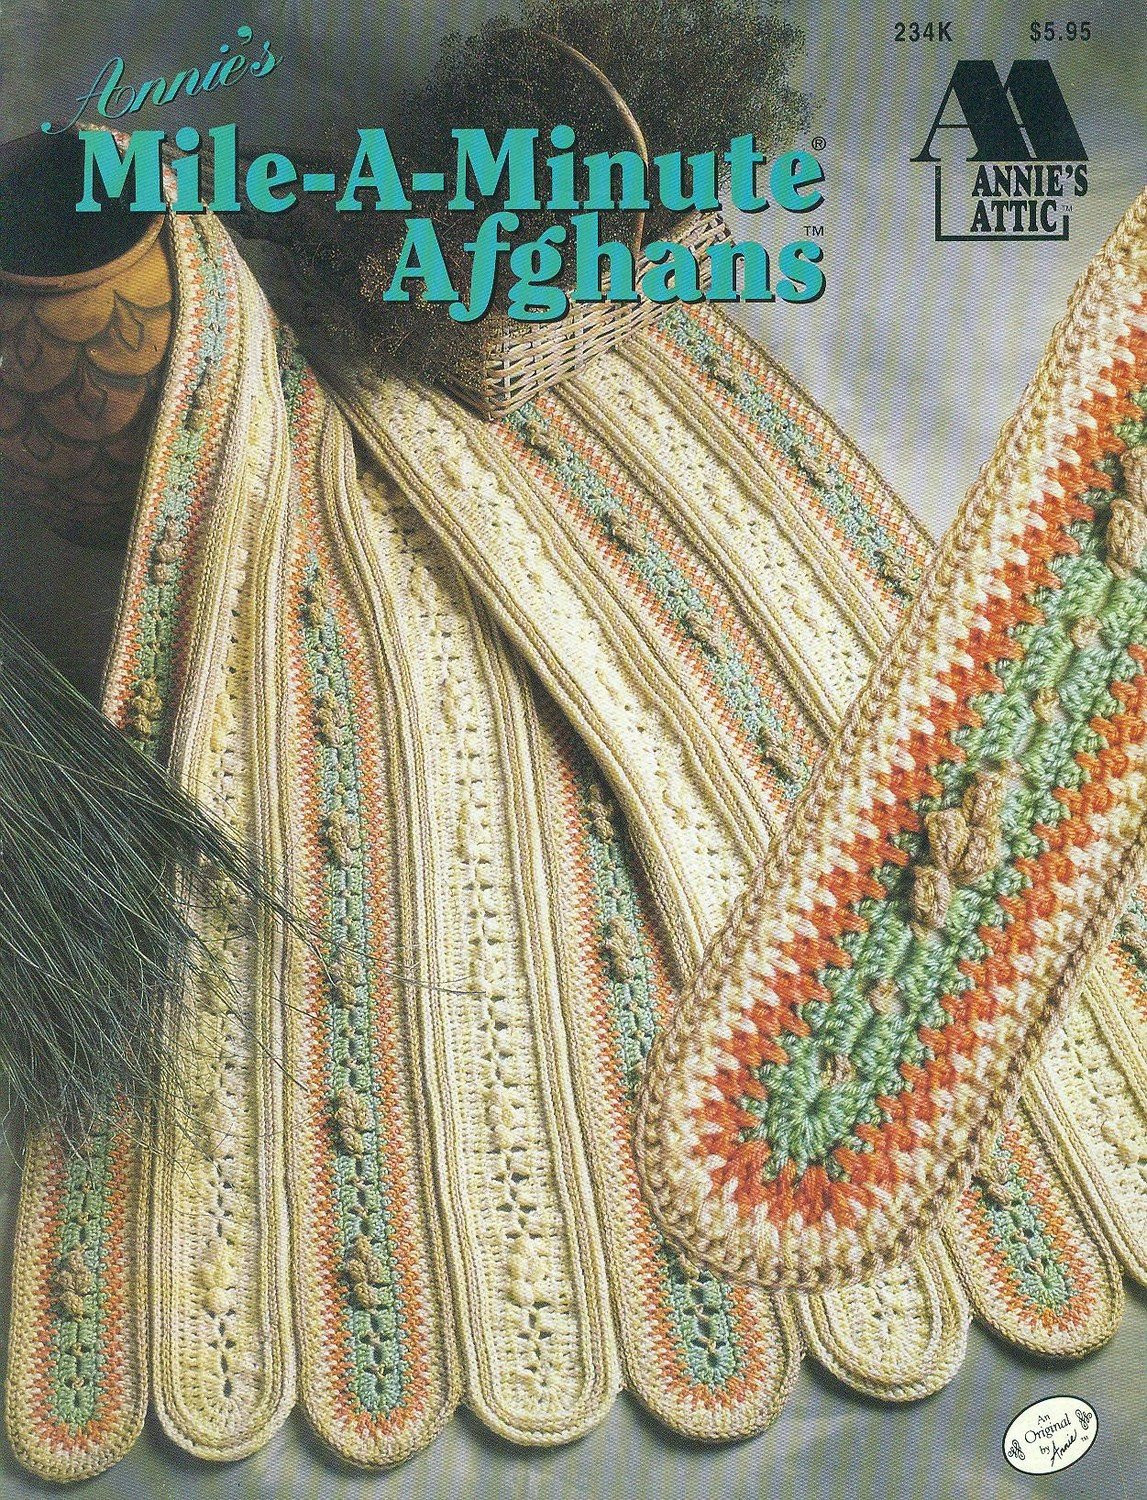 Luxury Annie S attic Crochet Mile A Minute Afghans Aran southwest Mile A Minute Crochet Afghan Patterns Of Amazing 42 Ideas Mile A Minute Crochet Afghan Patterns